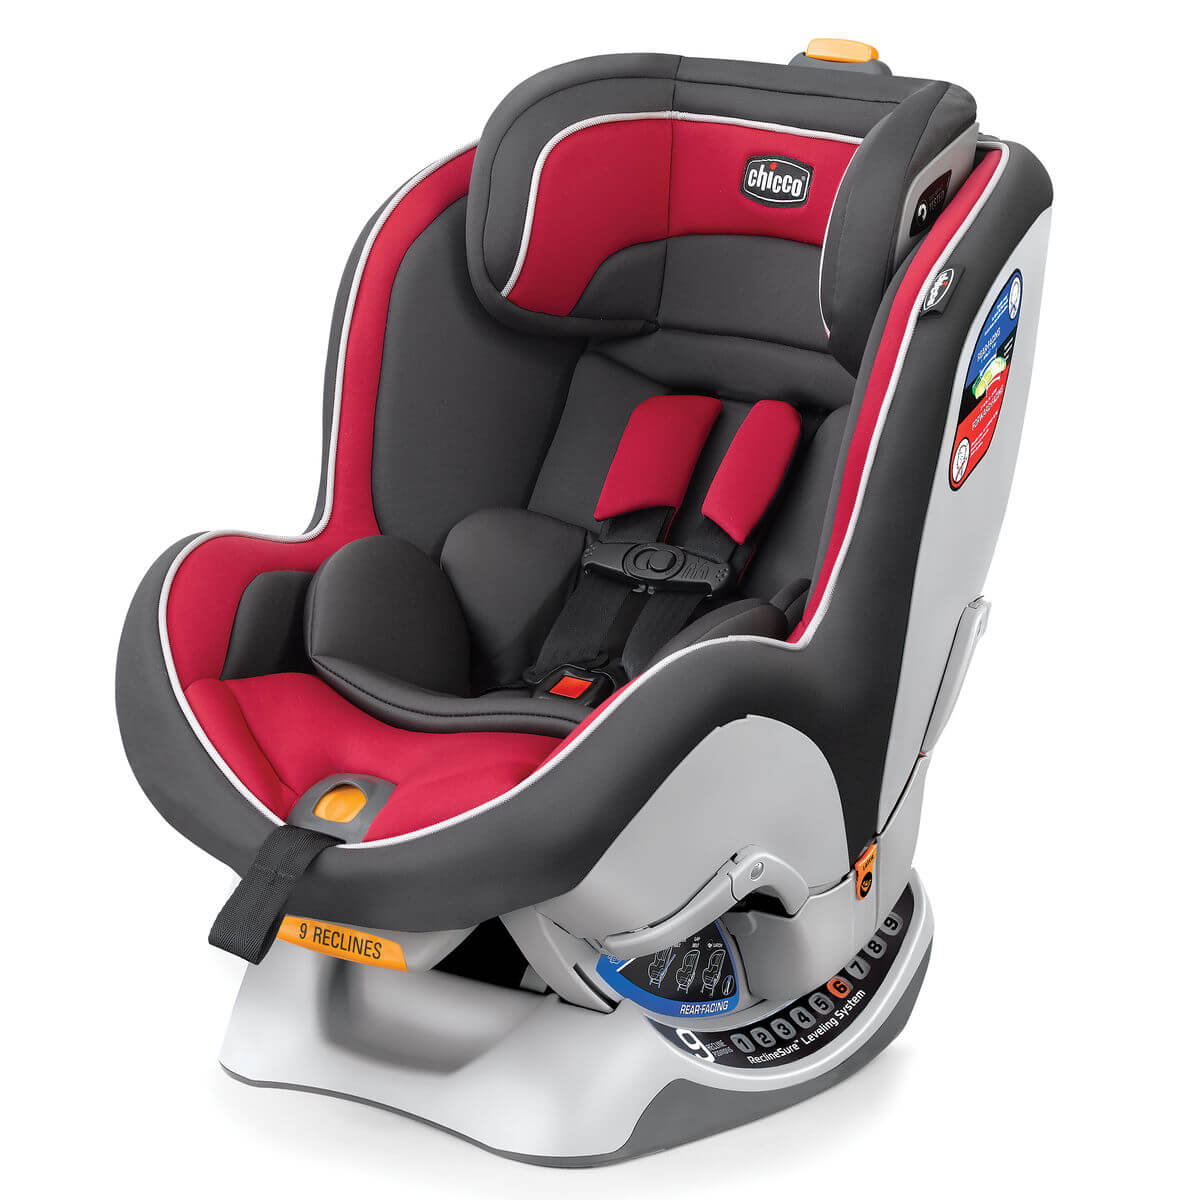 Best Convertible Safety Seat - Chicco